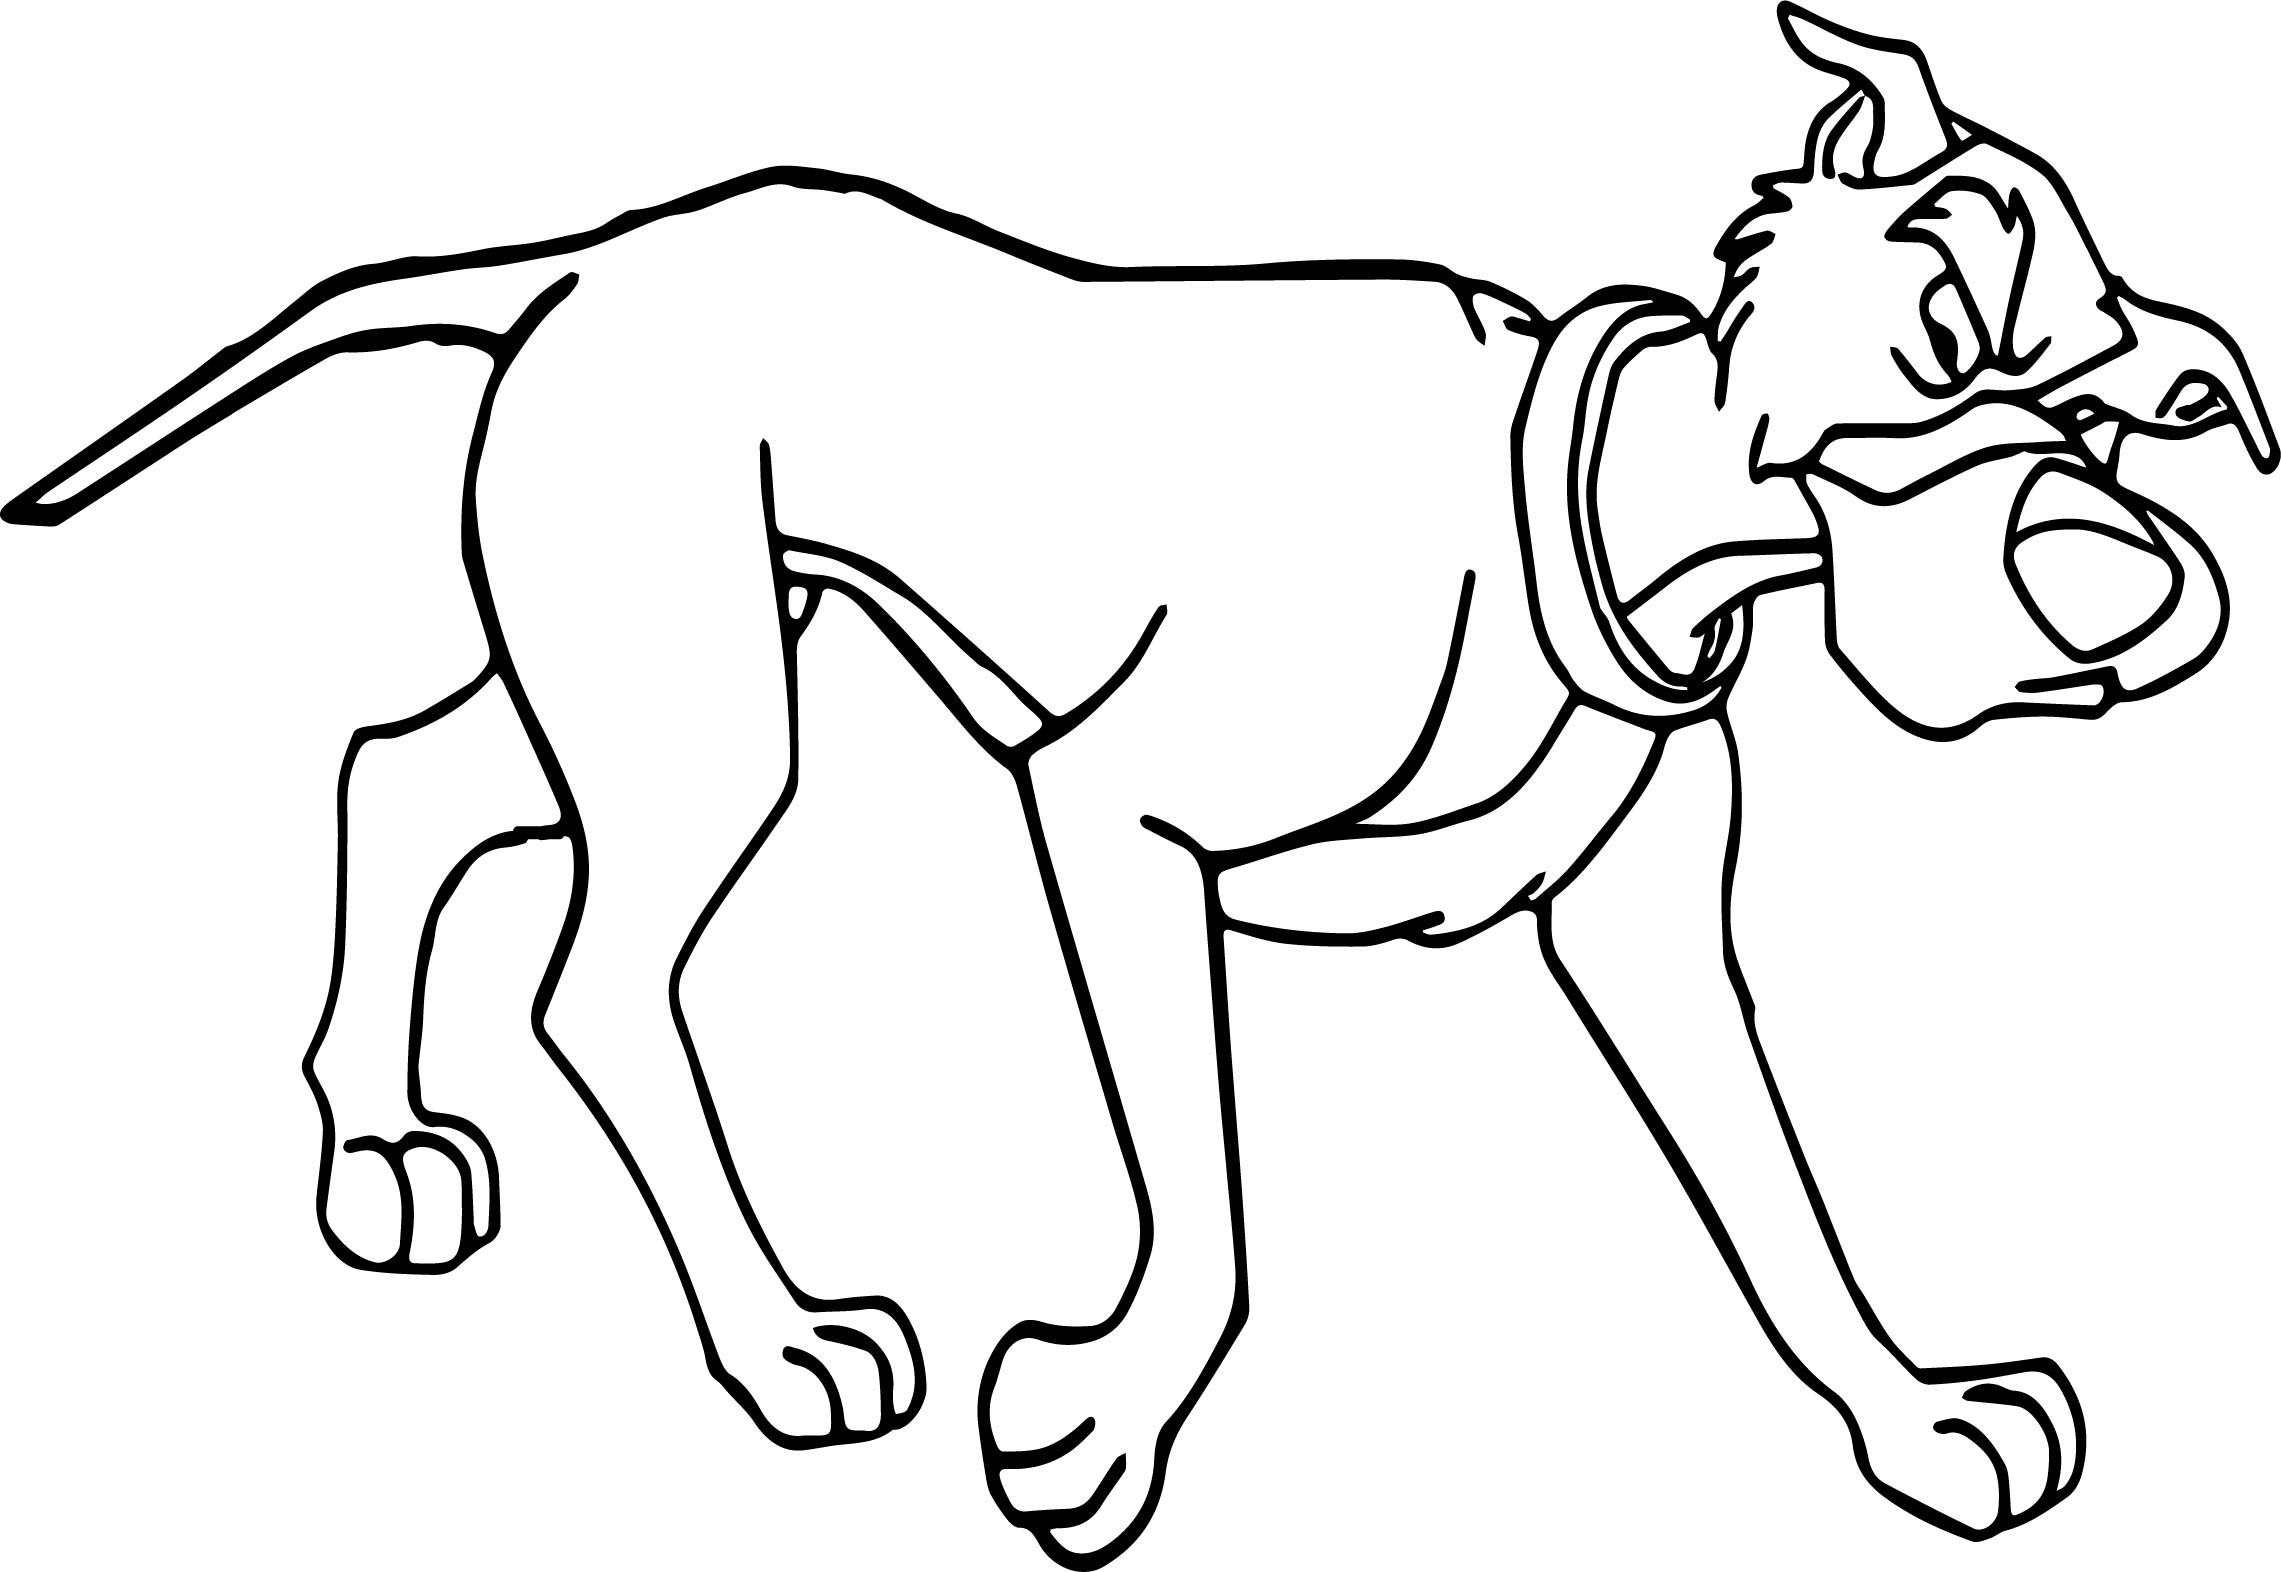 The Fox And The Hound Coloring Pages Free Coloring Pages Download ...